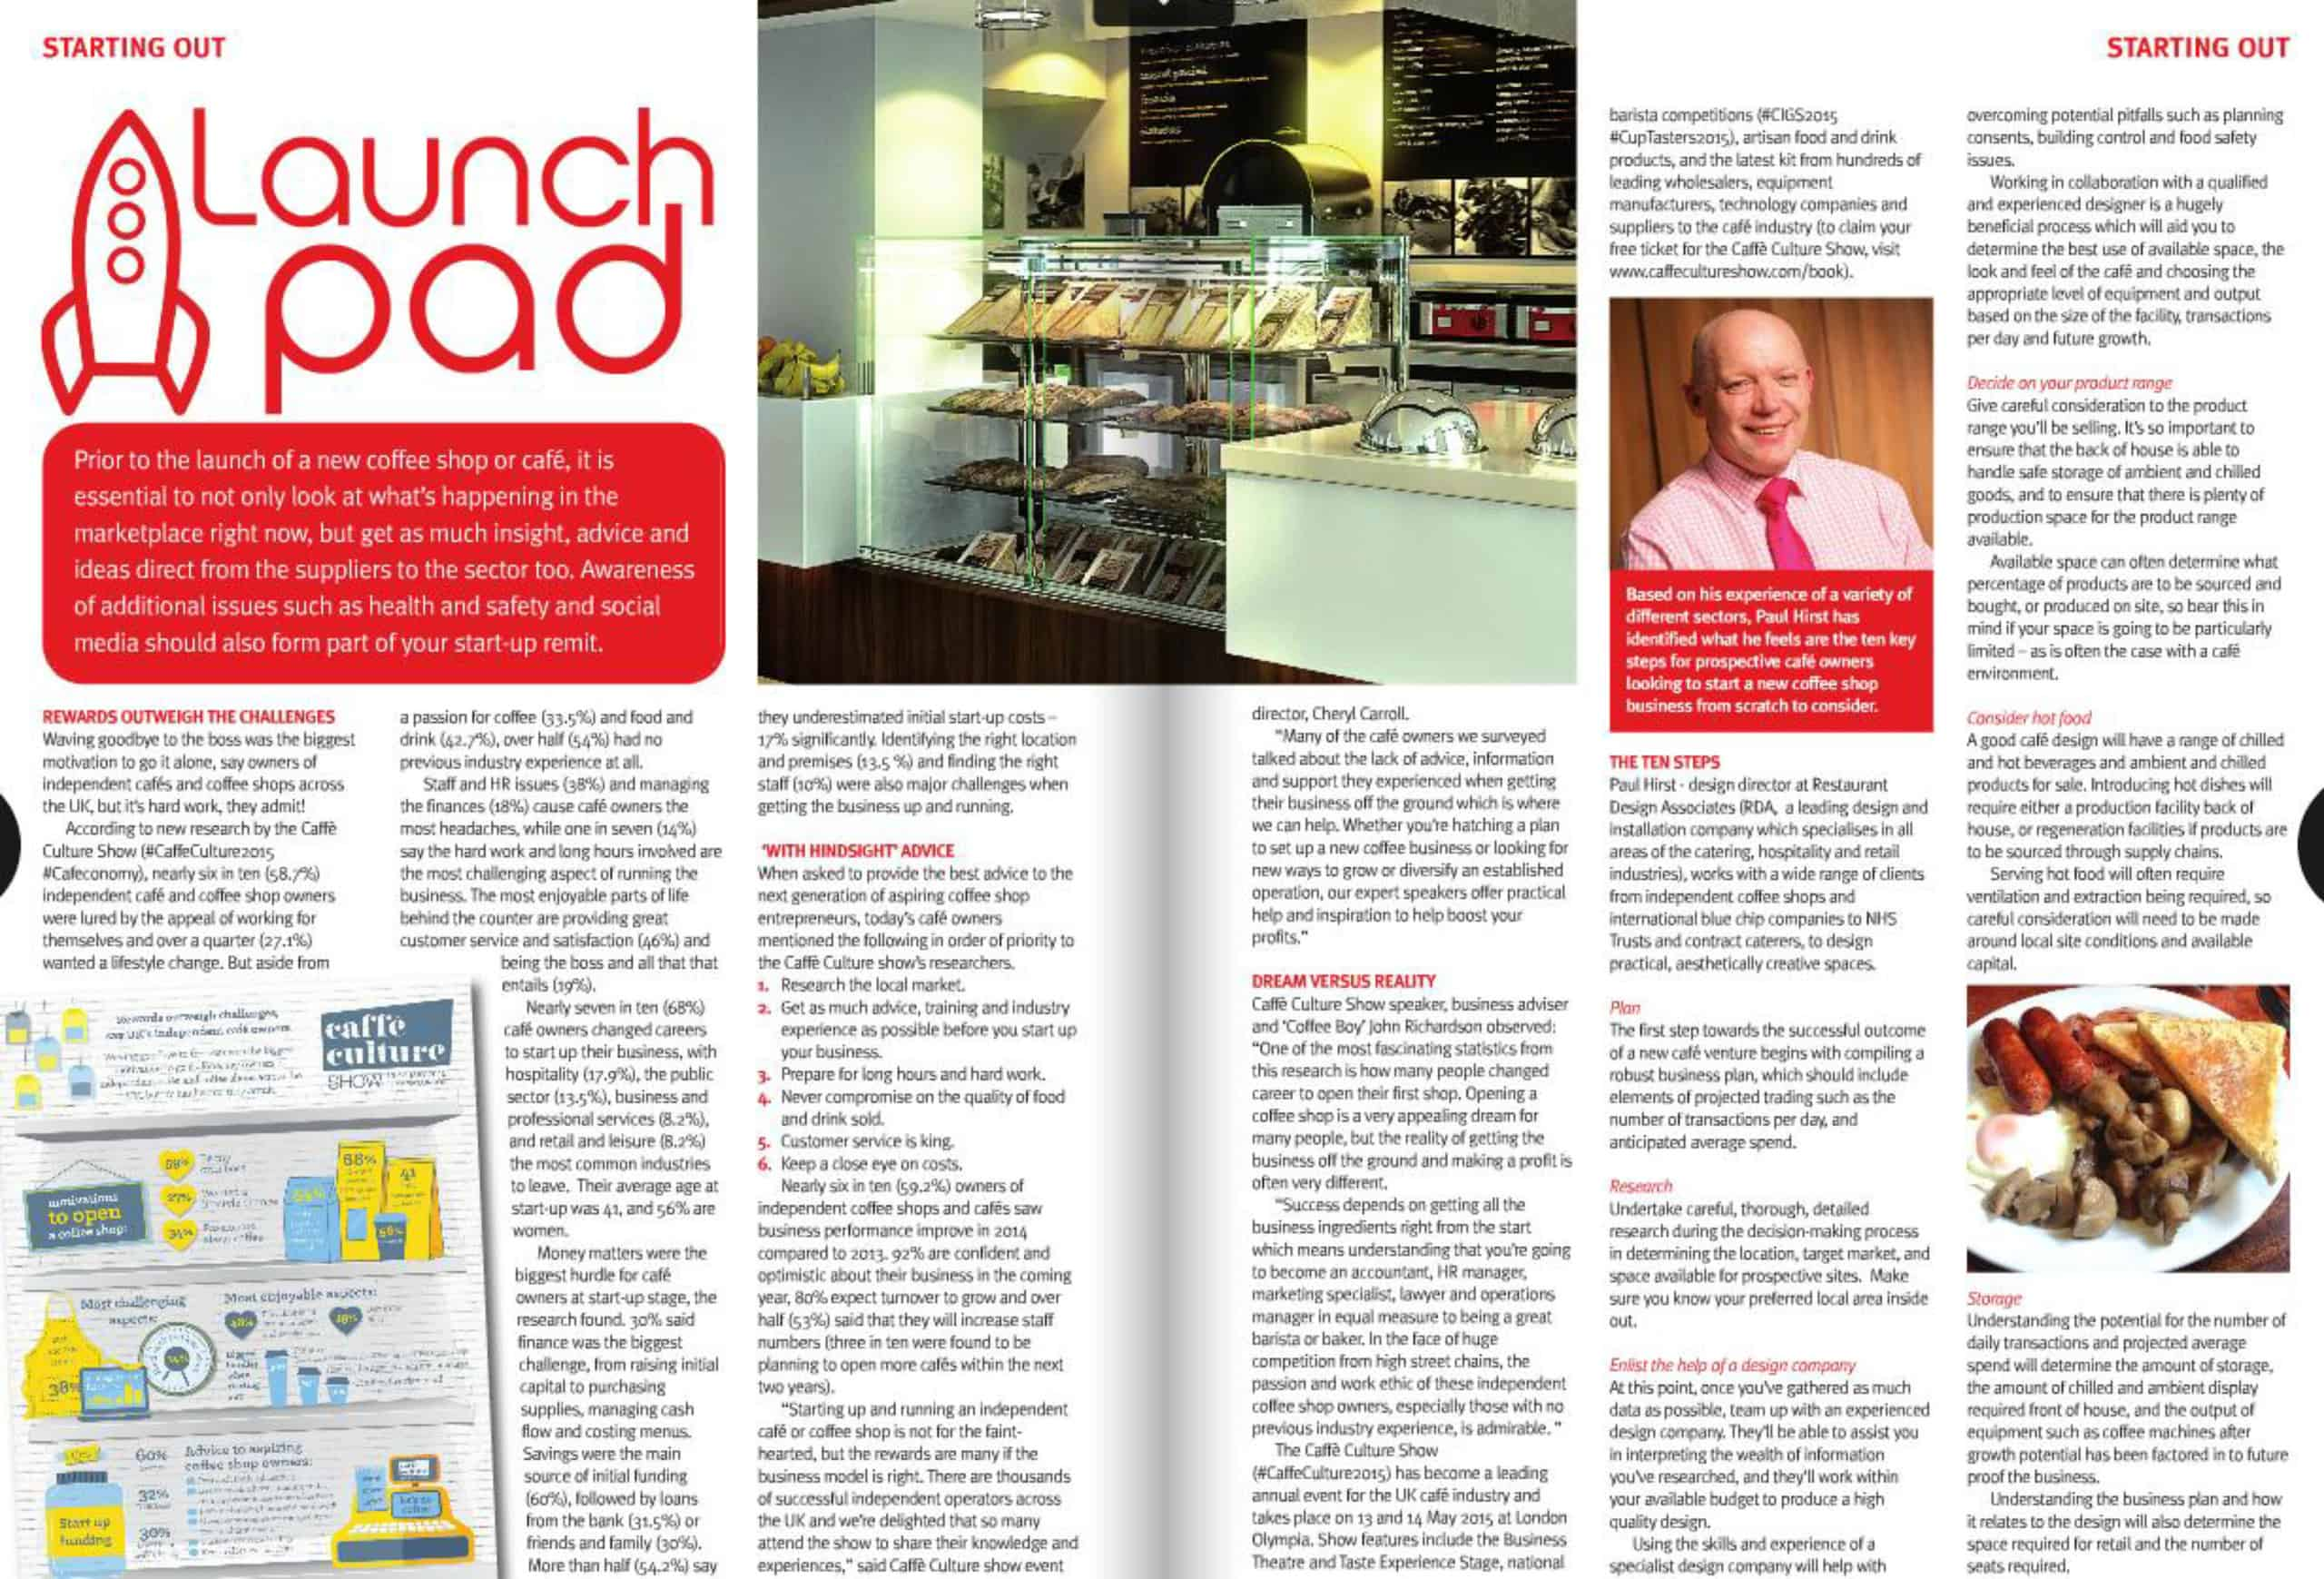 Paul Hirst's 10 steps to opening a cafe